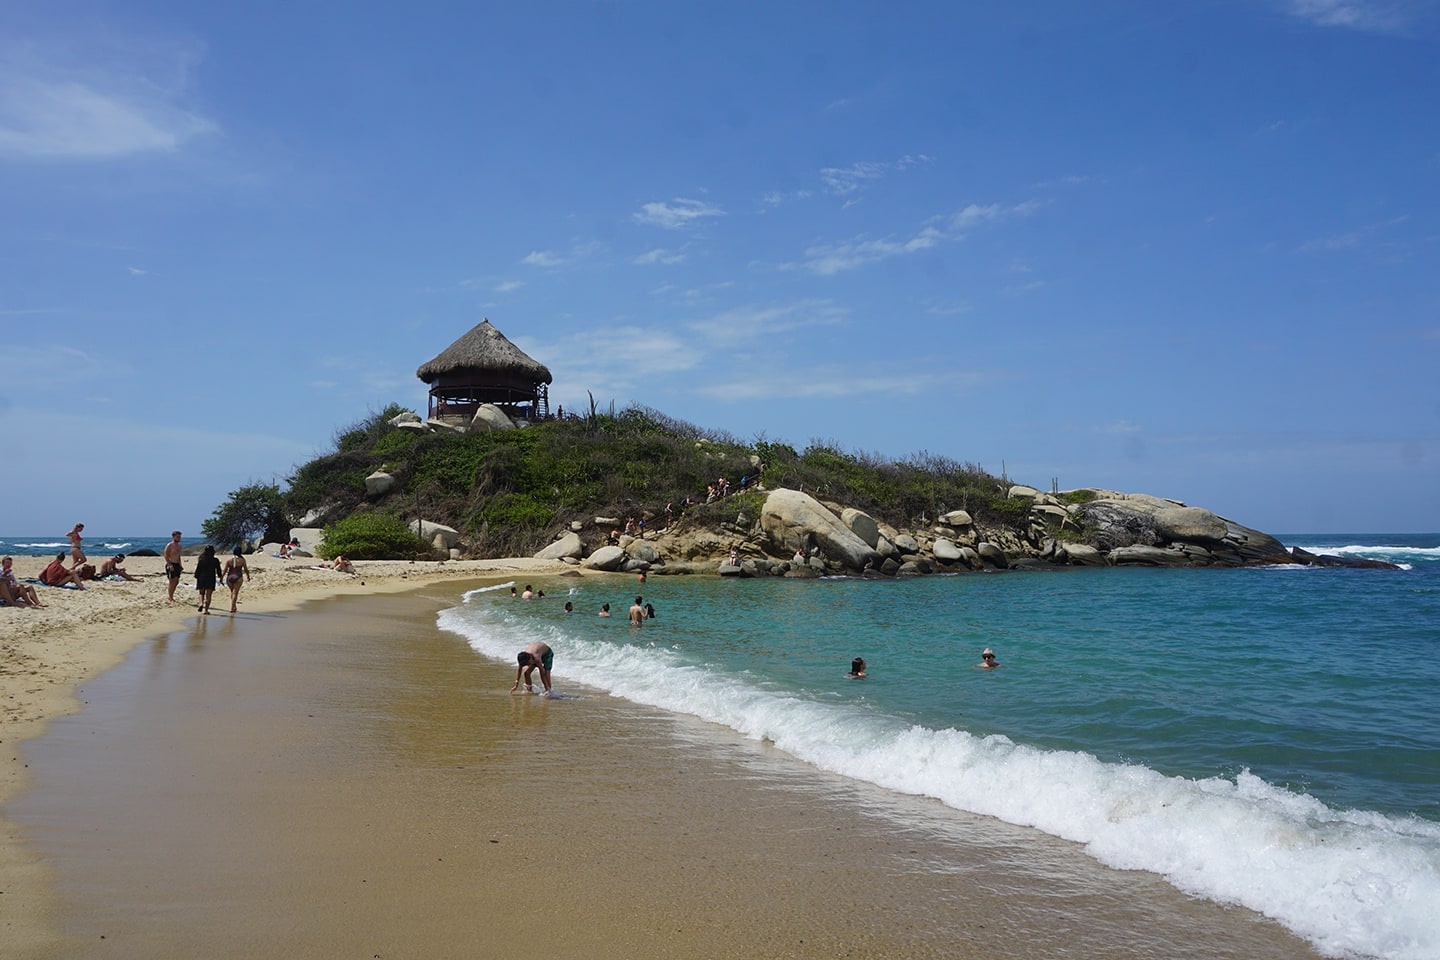 Overnachten in Tayrona National Park